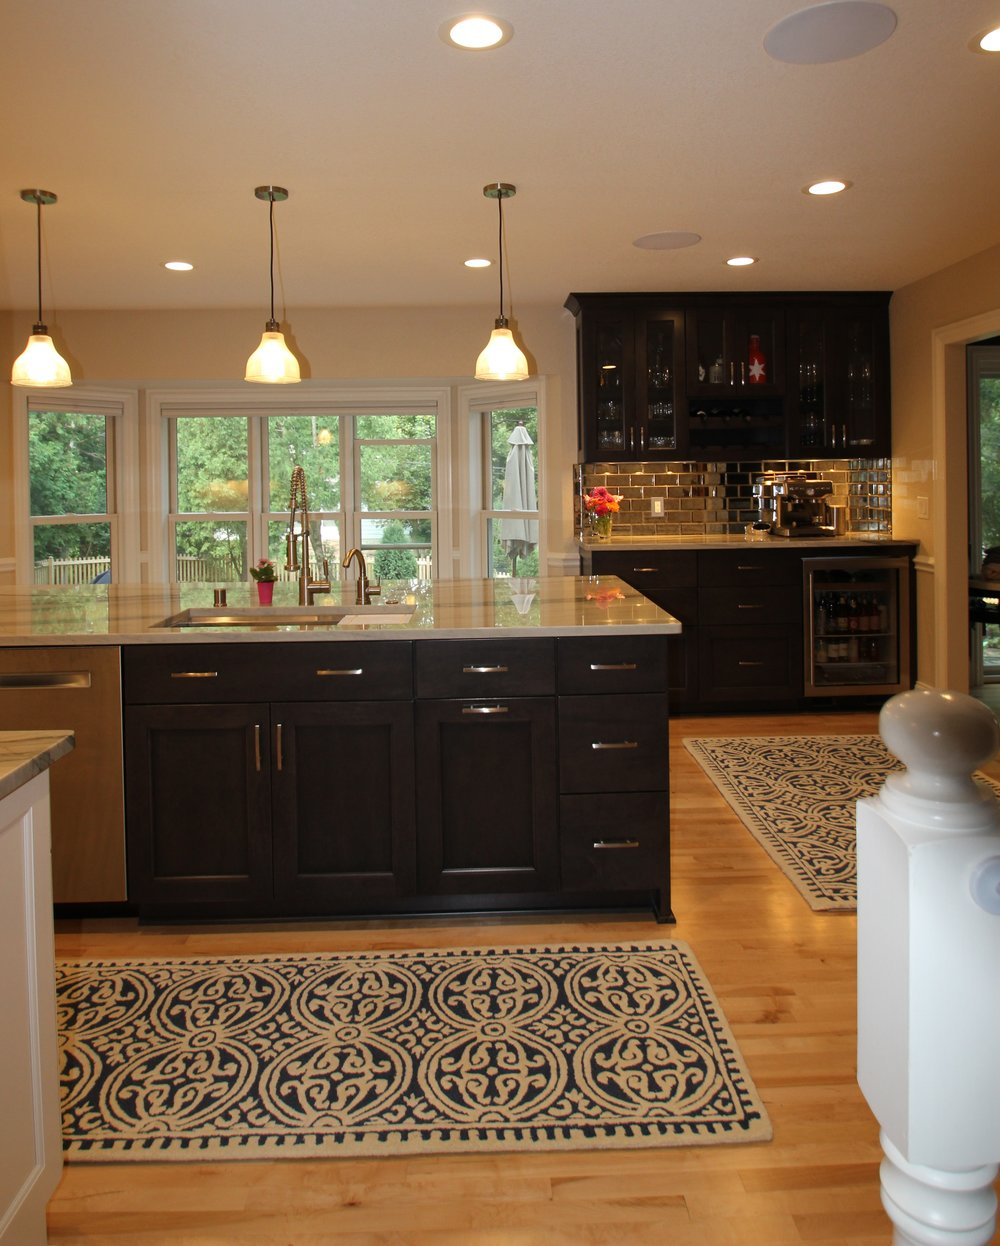 Elm Grove Kitchen Redesign - Custom Remodel